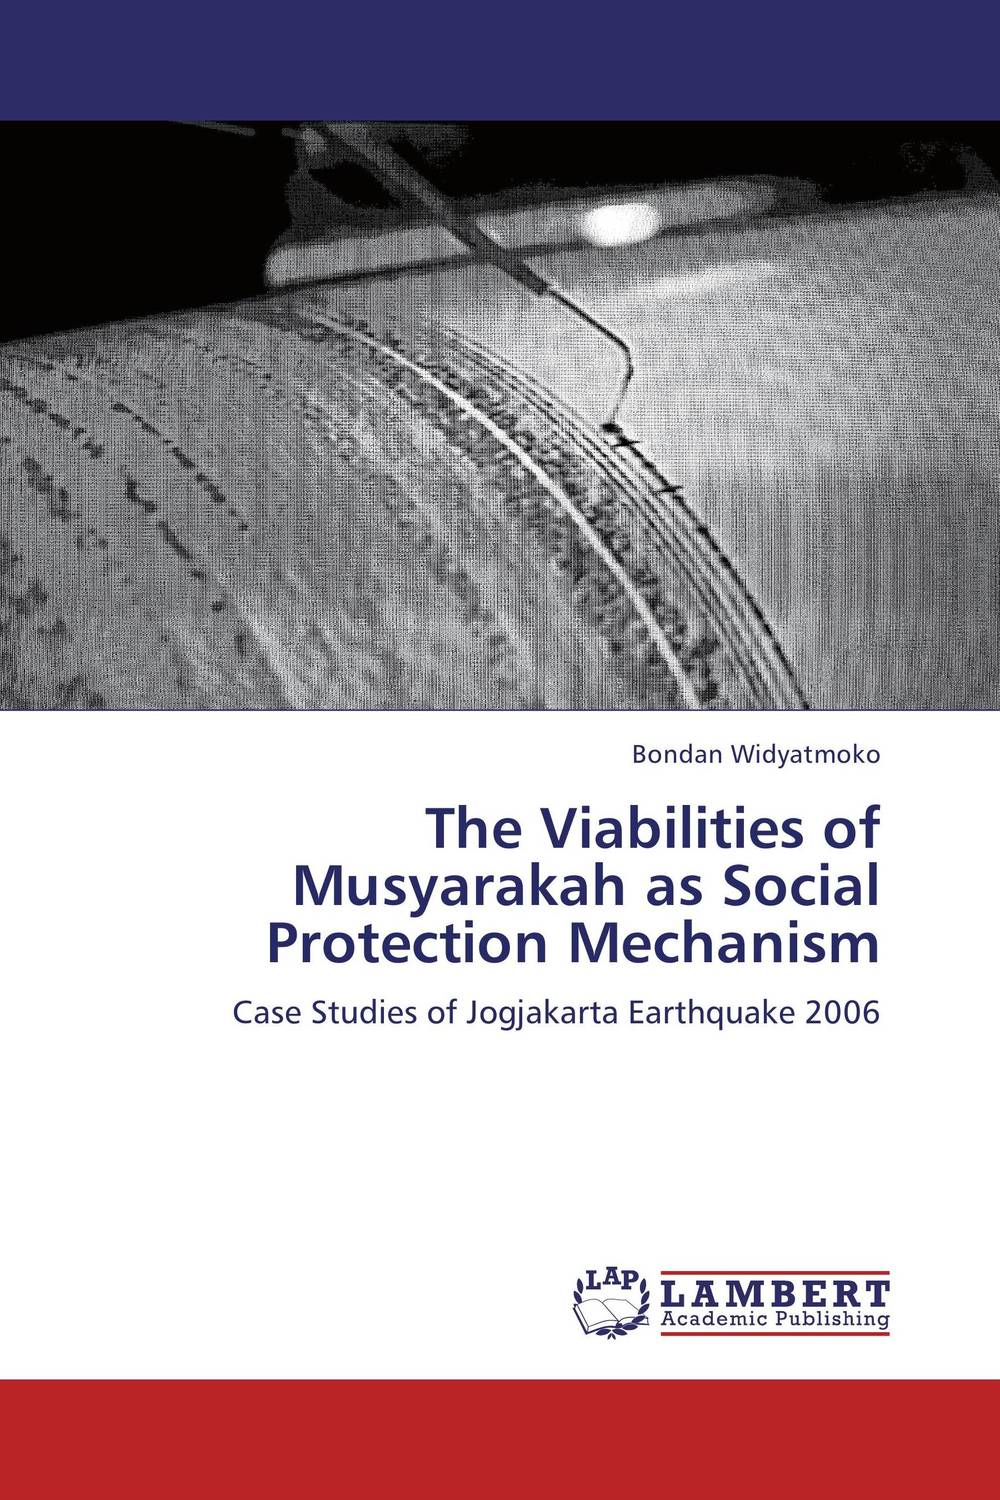 The Viabilities of Musyarakah as Social Protection Mechanism the viabilities of musyarakah as social protection mechanism